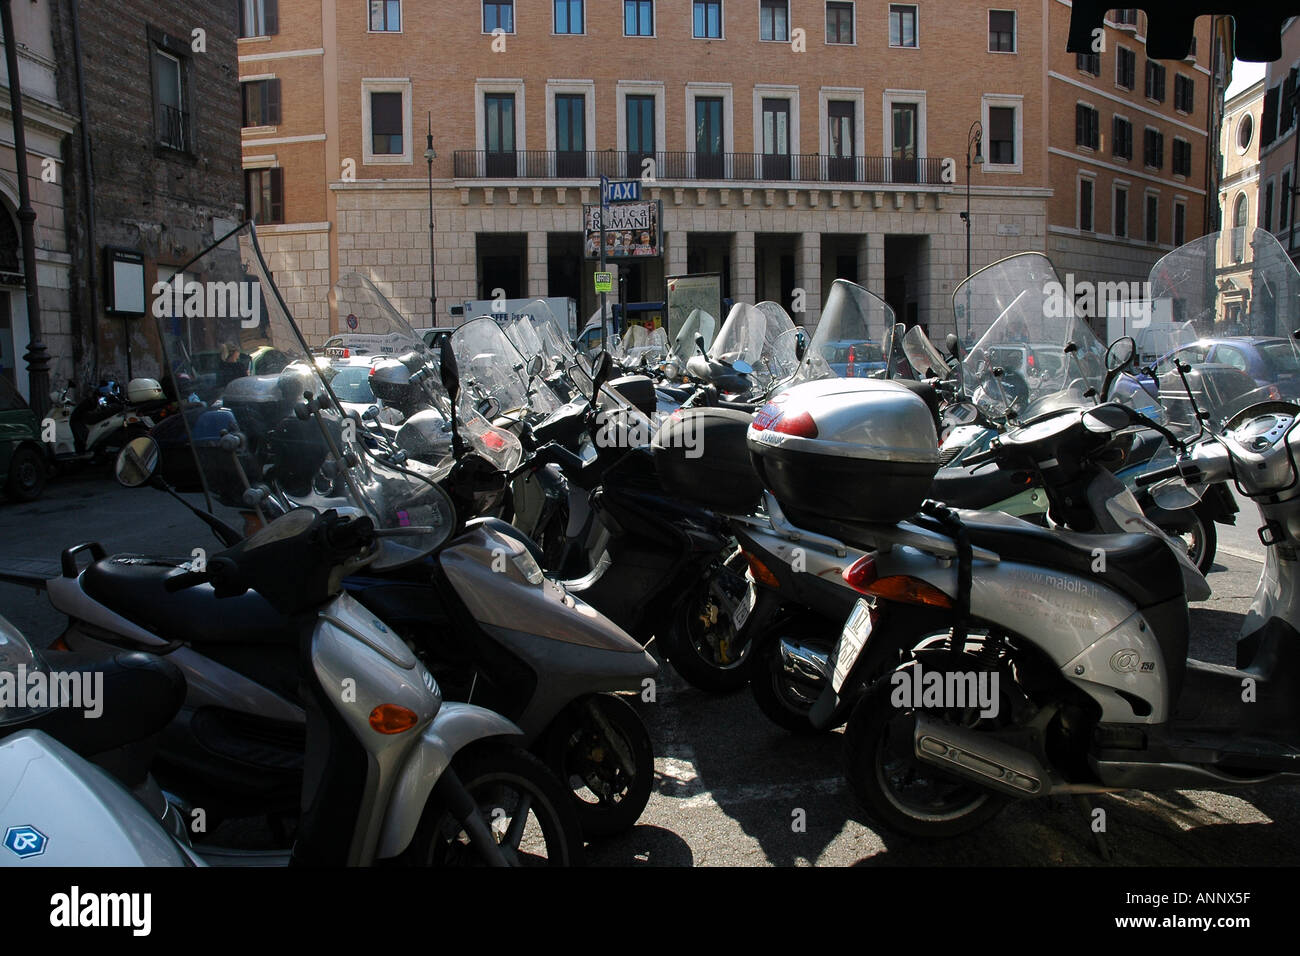 Parked scooters, a few among many, in central Rome - Stock Image